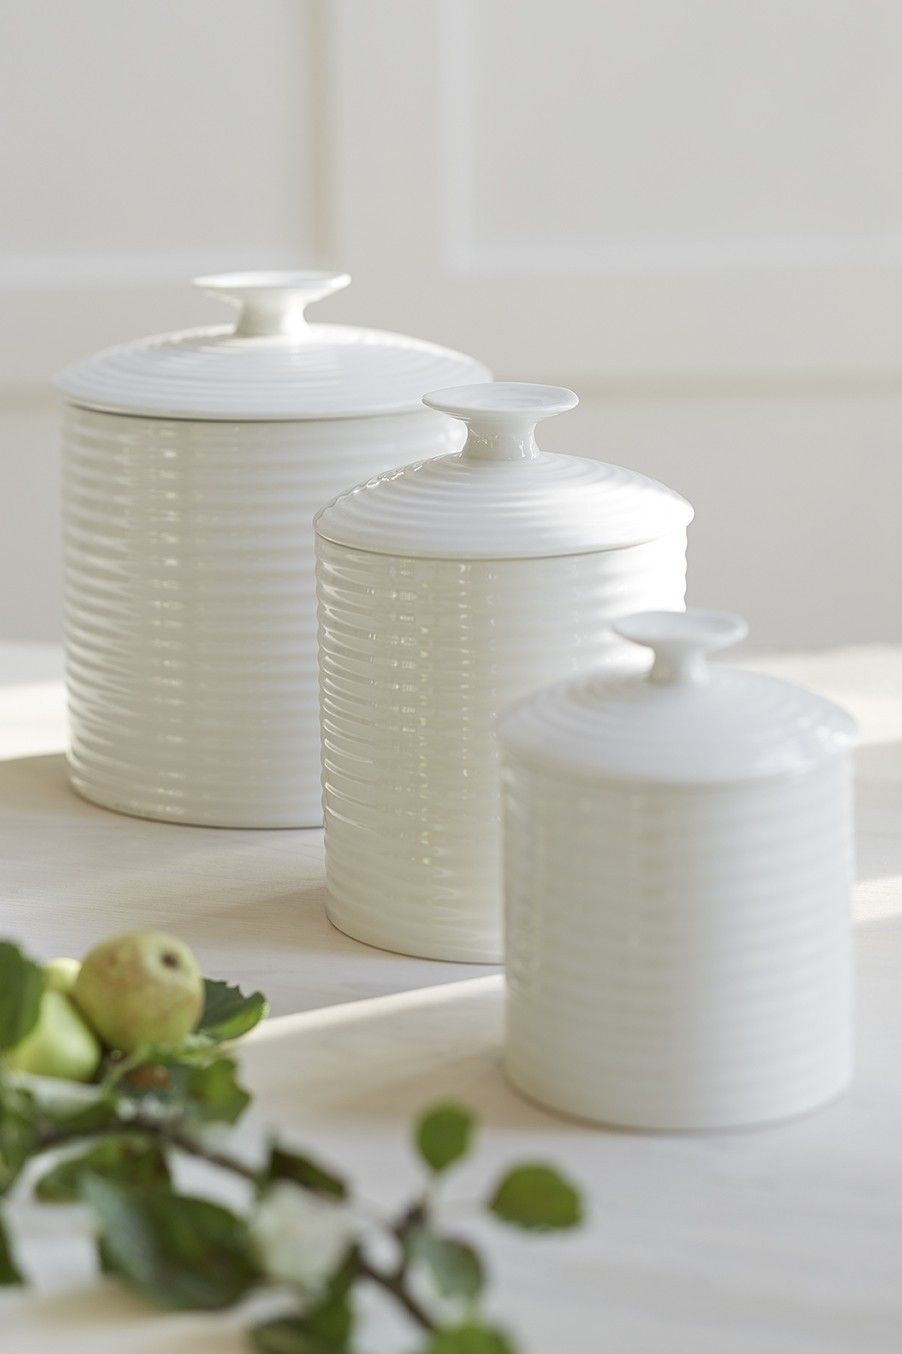 White Ceramic Storage Jars Ceramic Kitchen Canisters White Kitchen Canisters Jar Storage